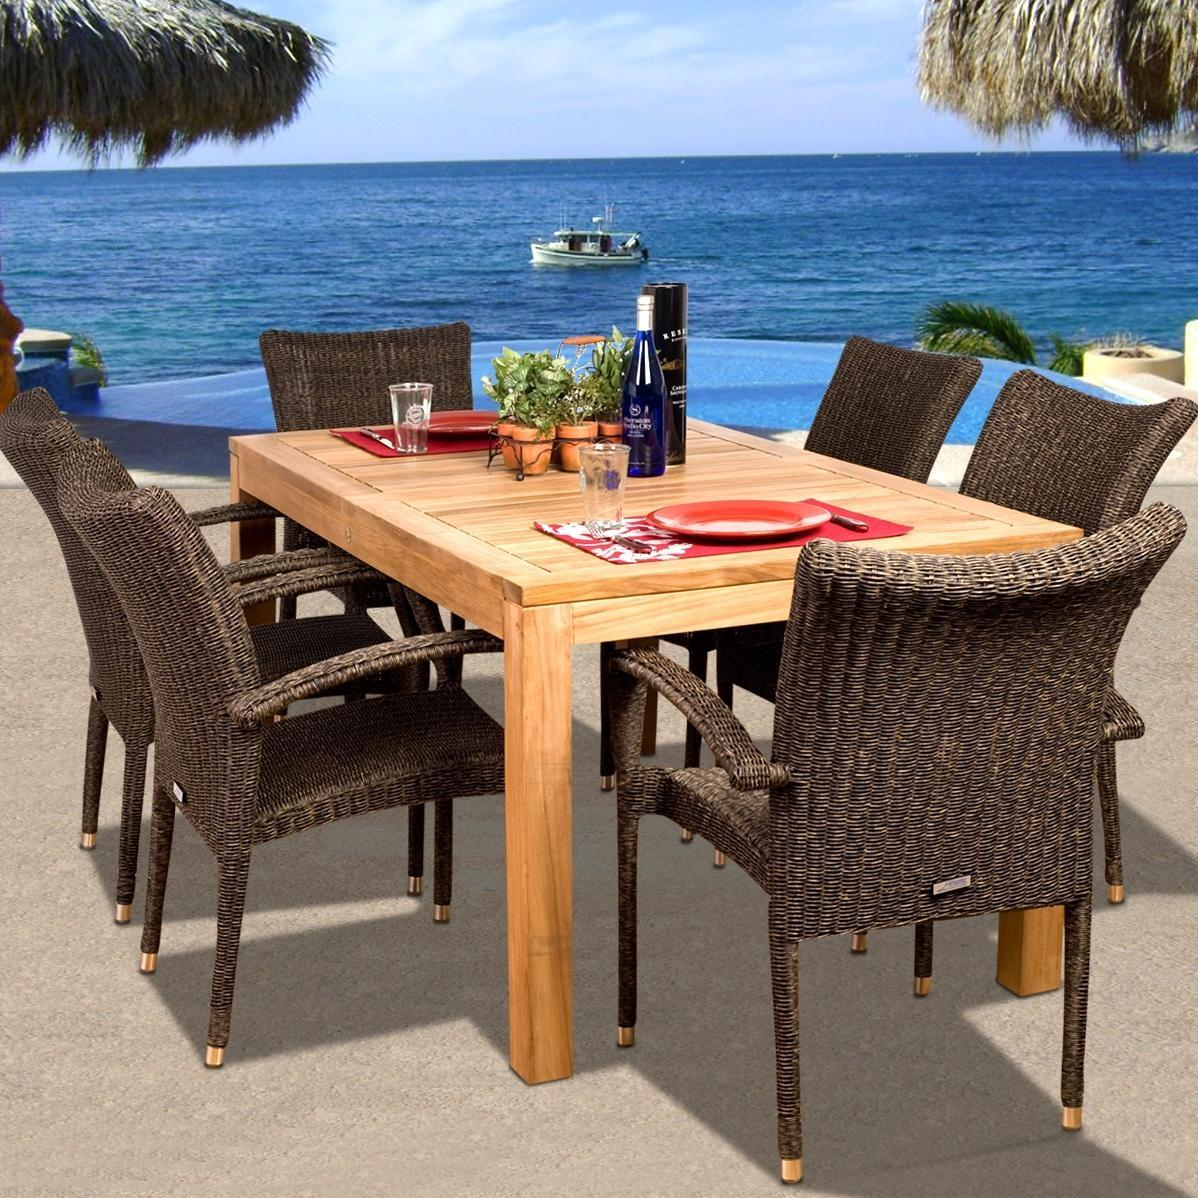 Amazonia Teak Brussels 6-person Resin Wicker Patio Dining Set With Stacking Chairs